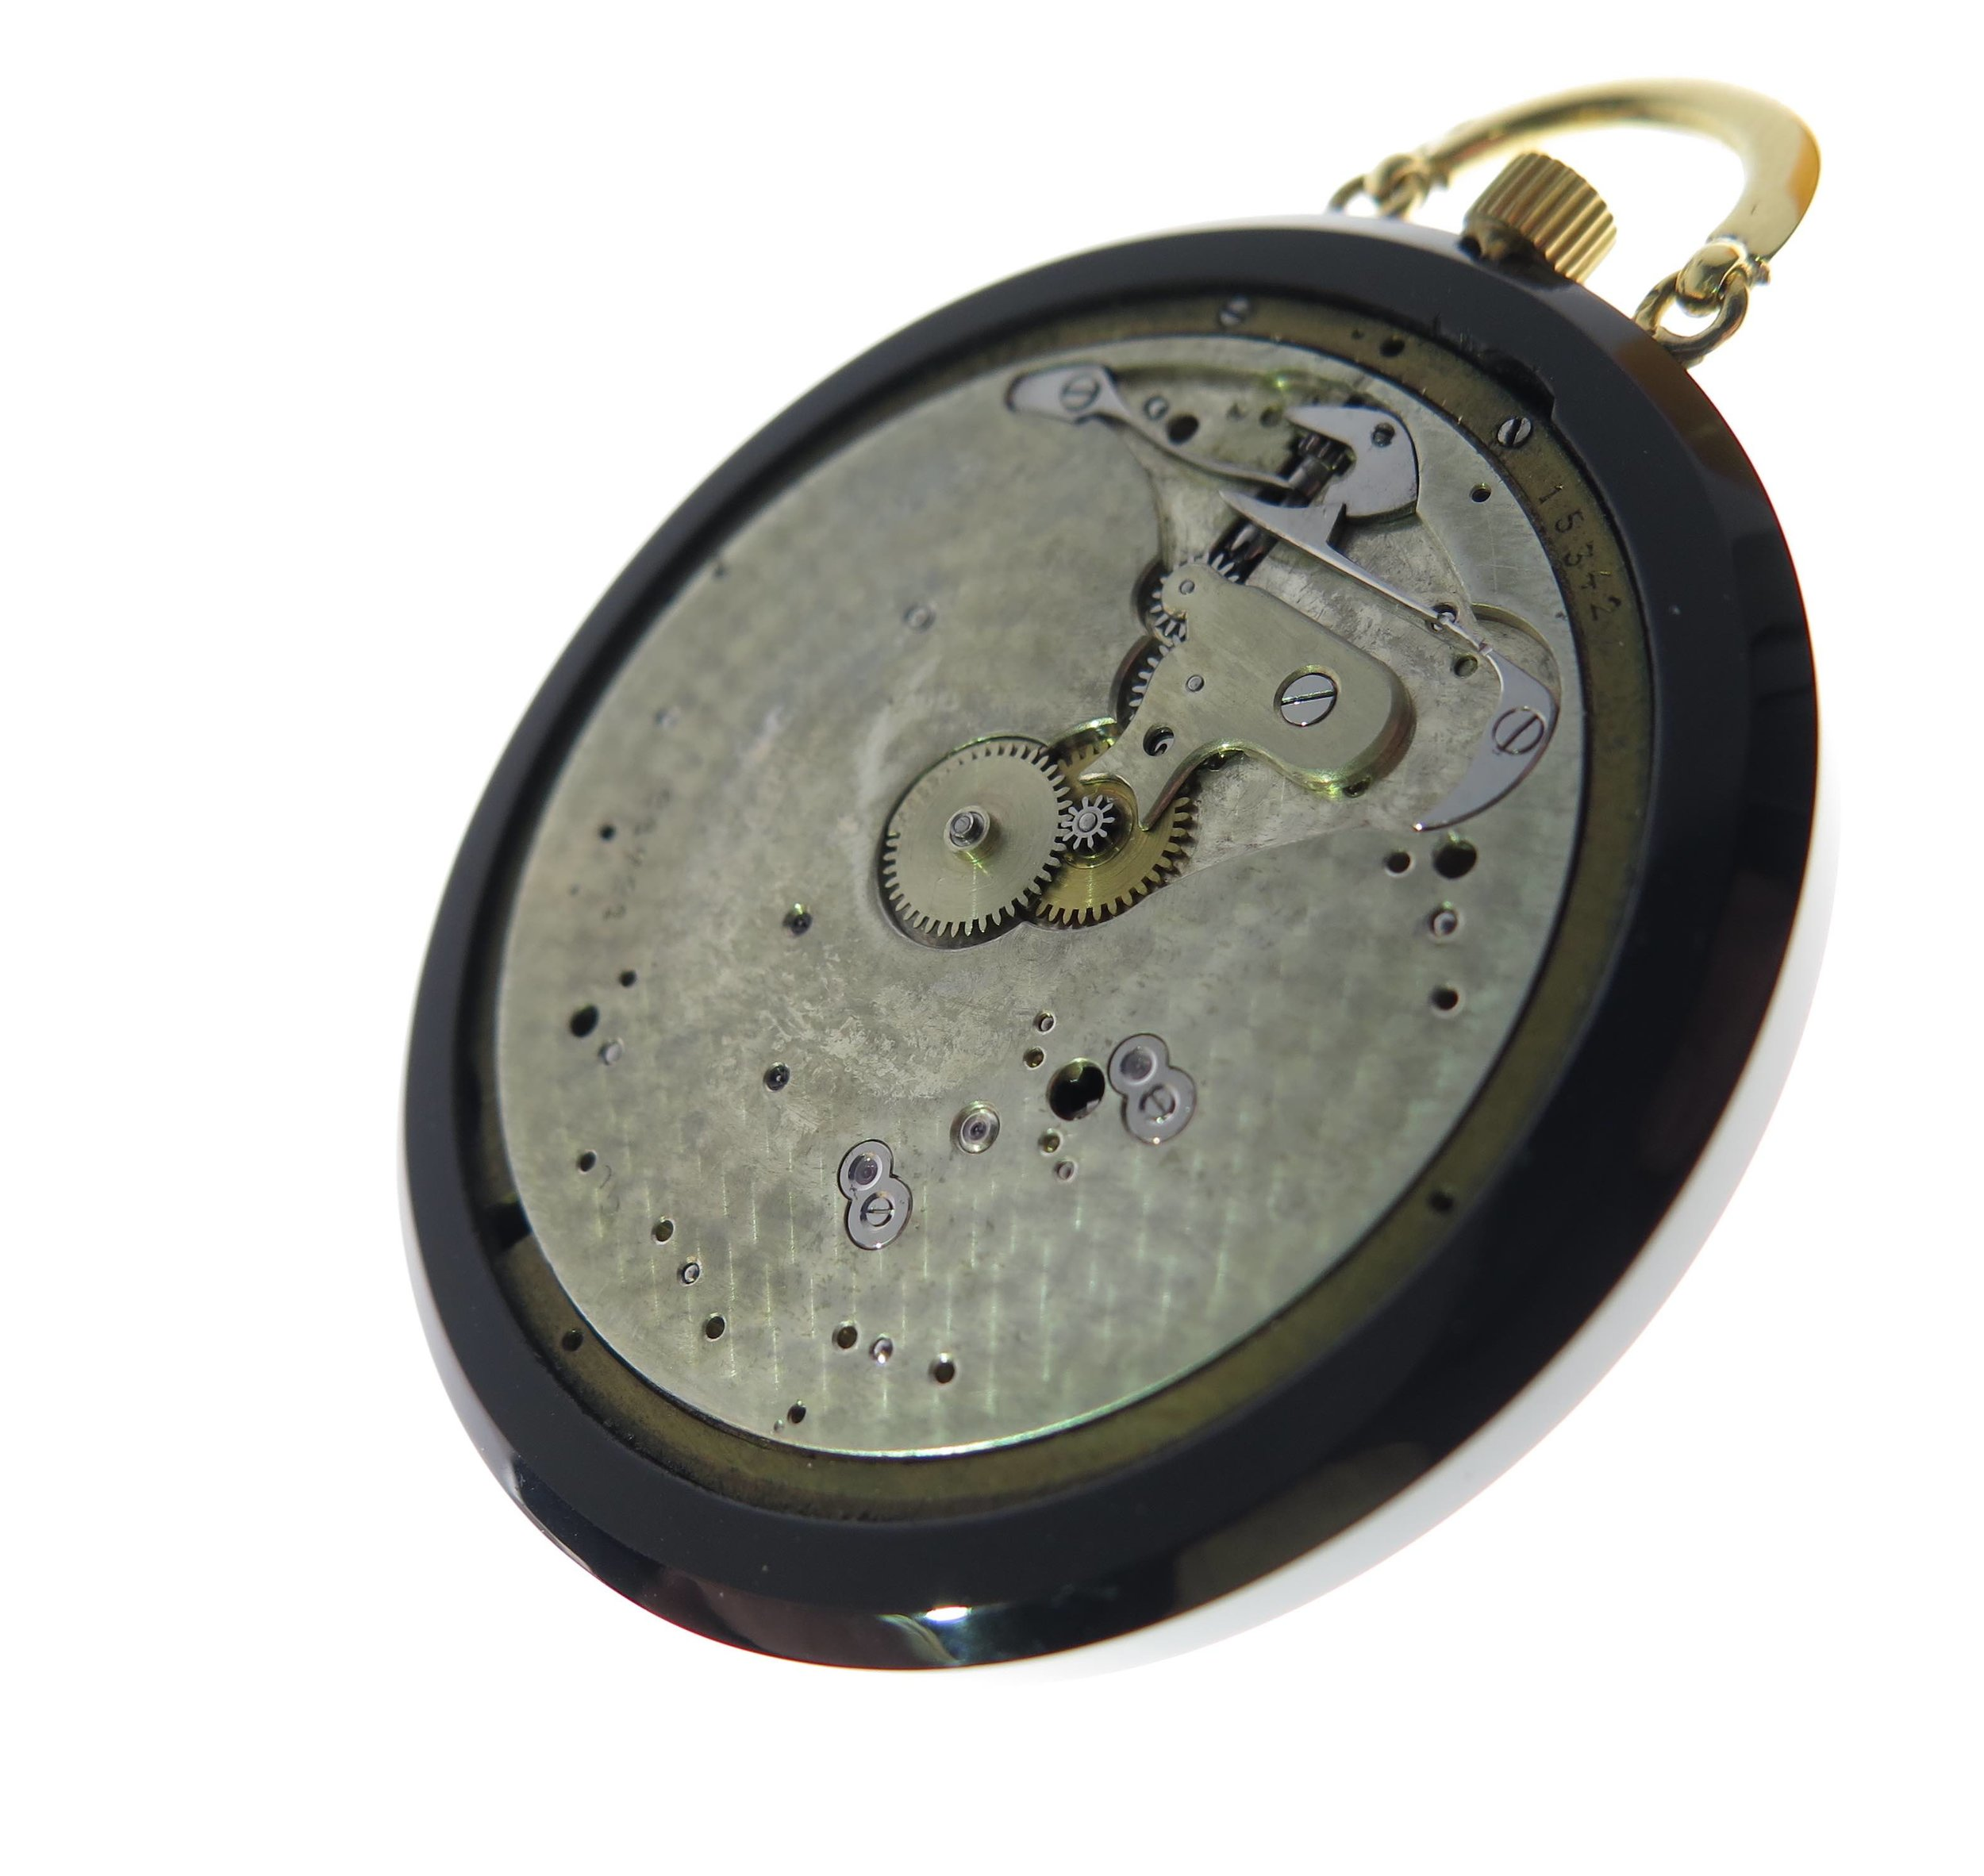 The movement viewed in the case with out the dial